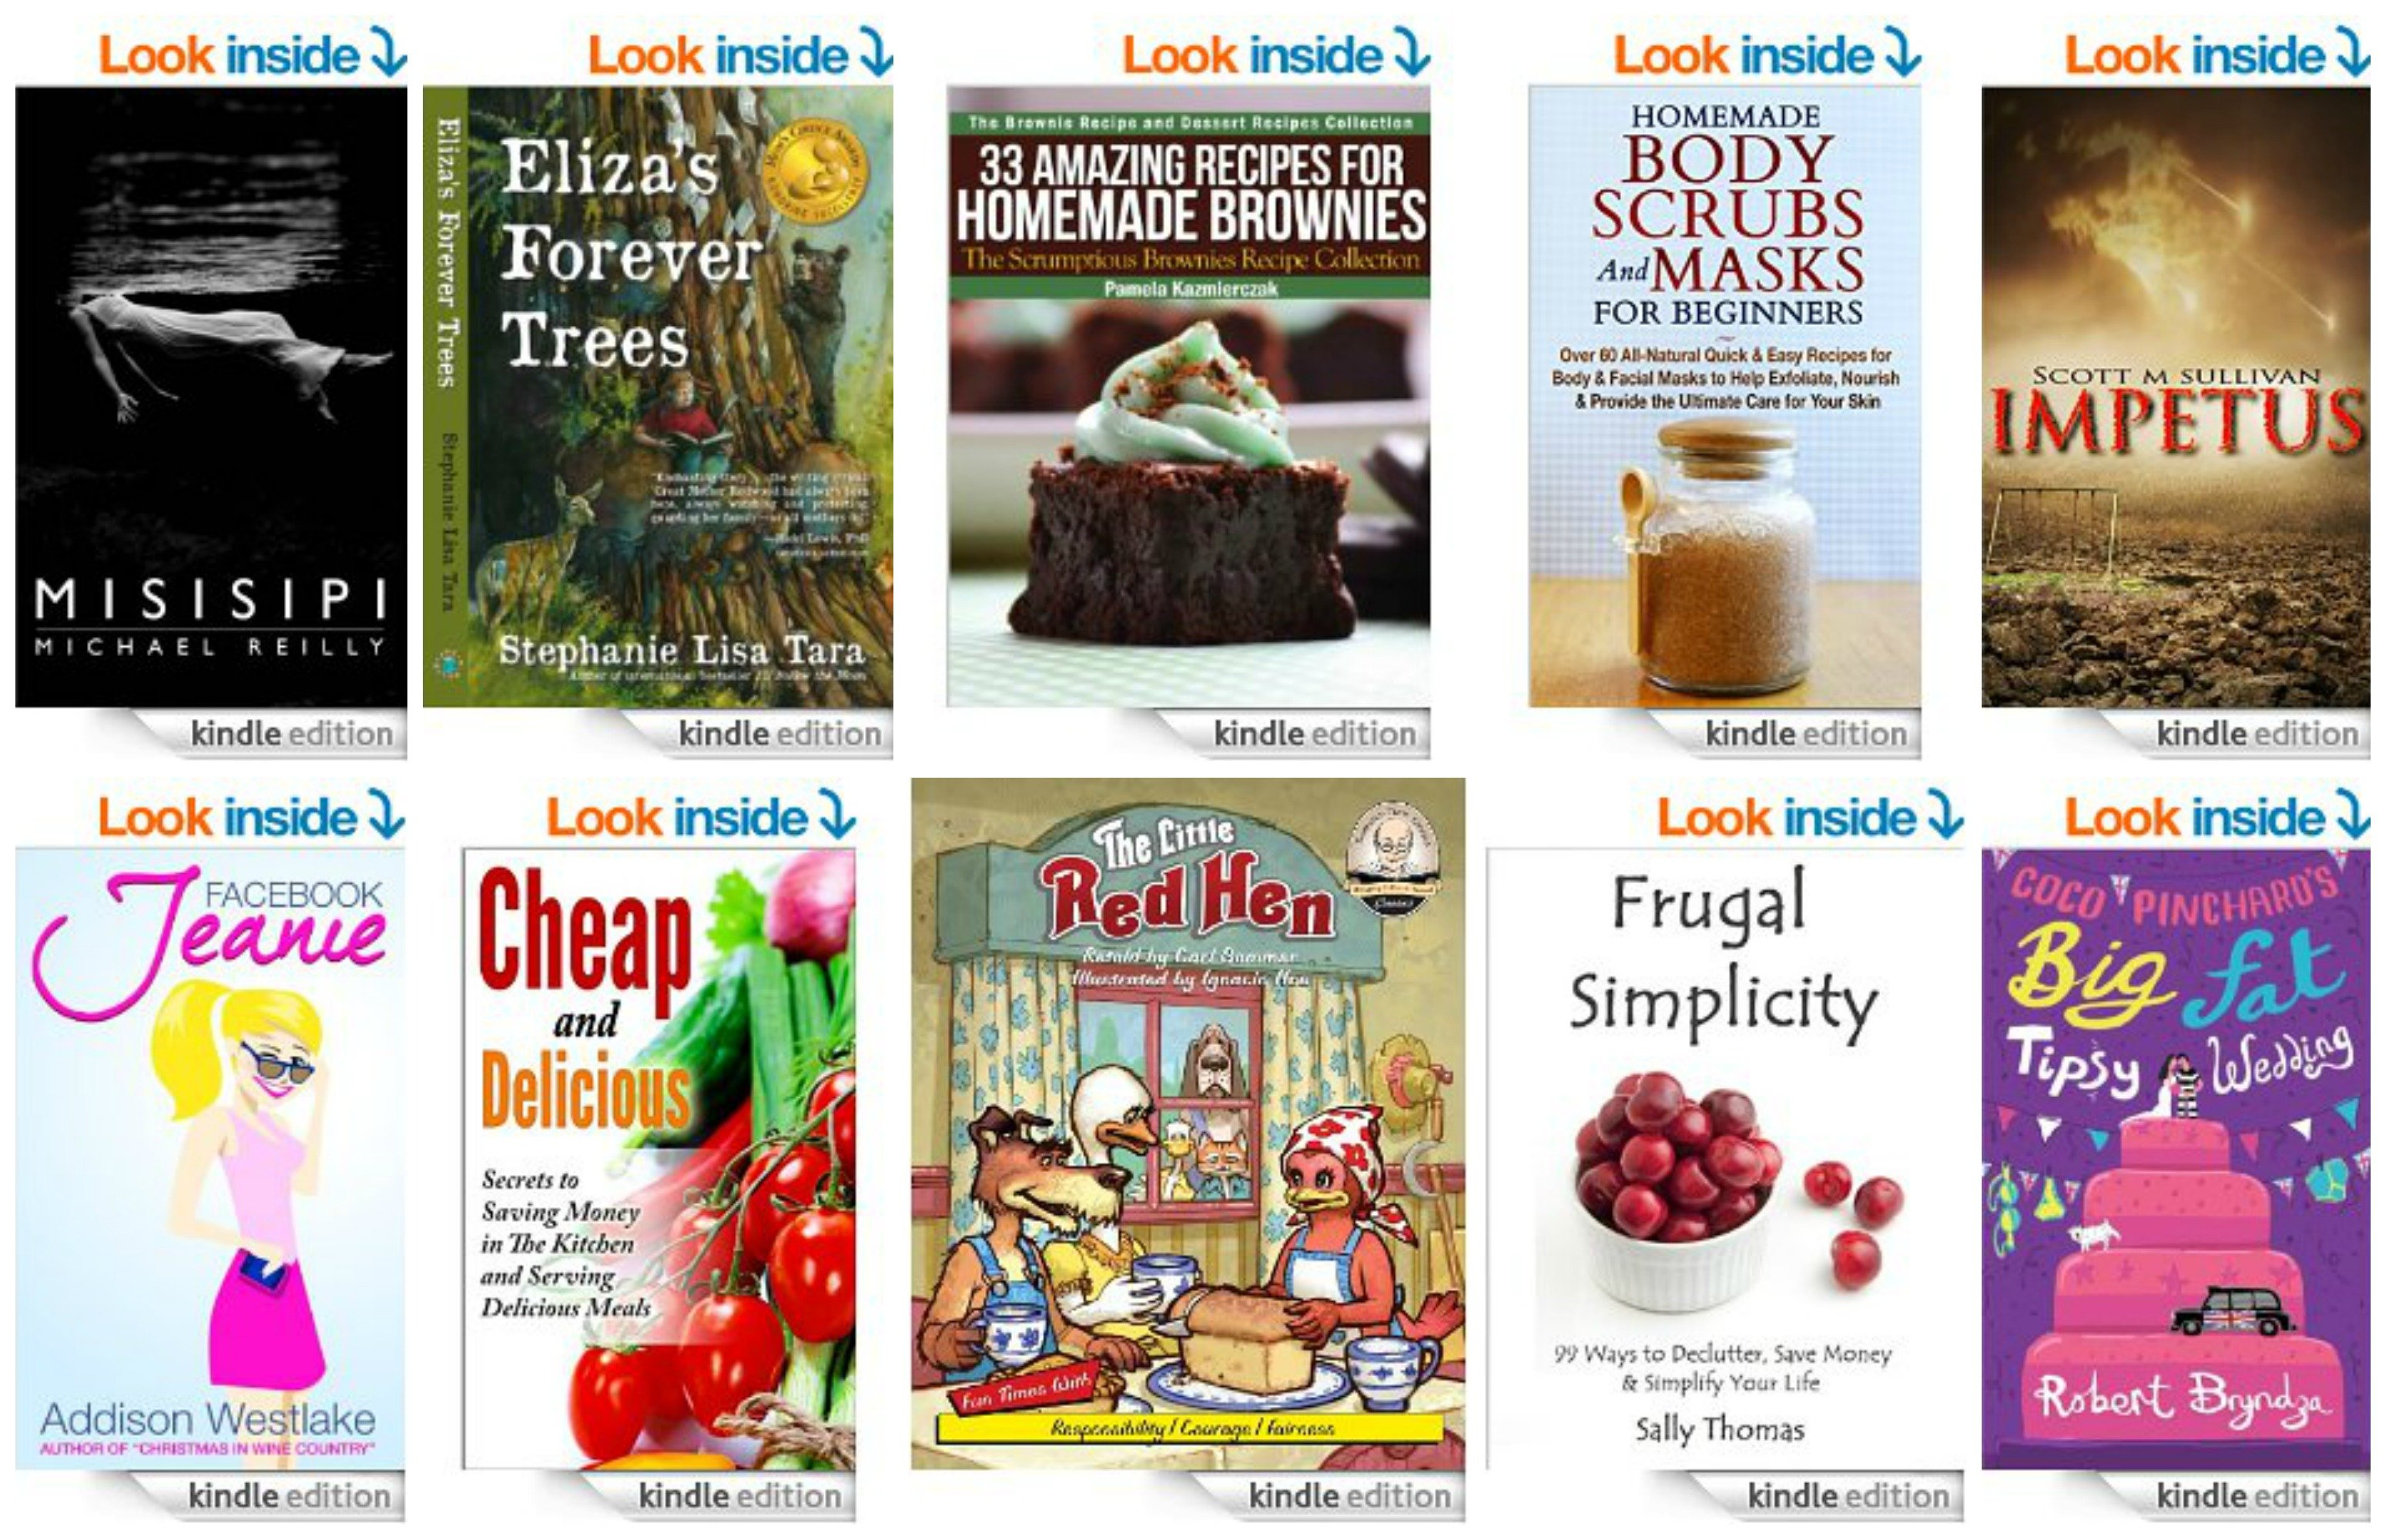 10 Free Kindle Ebooks: Cheap & Delicious, Facebook Jeanie, 33 Amazing Recipes for Homemade Brownies and MORE